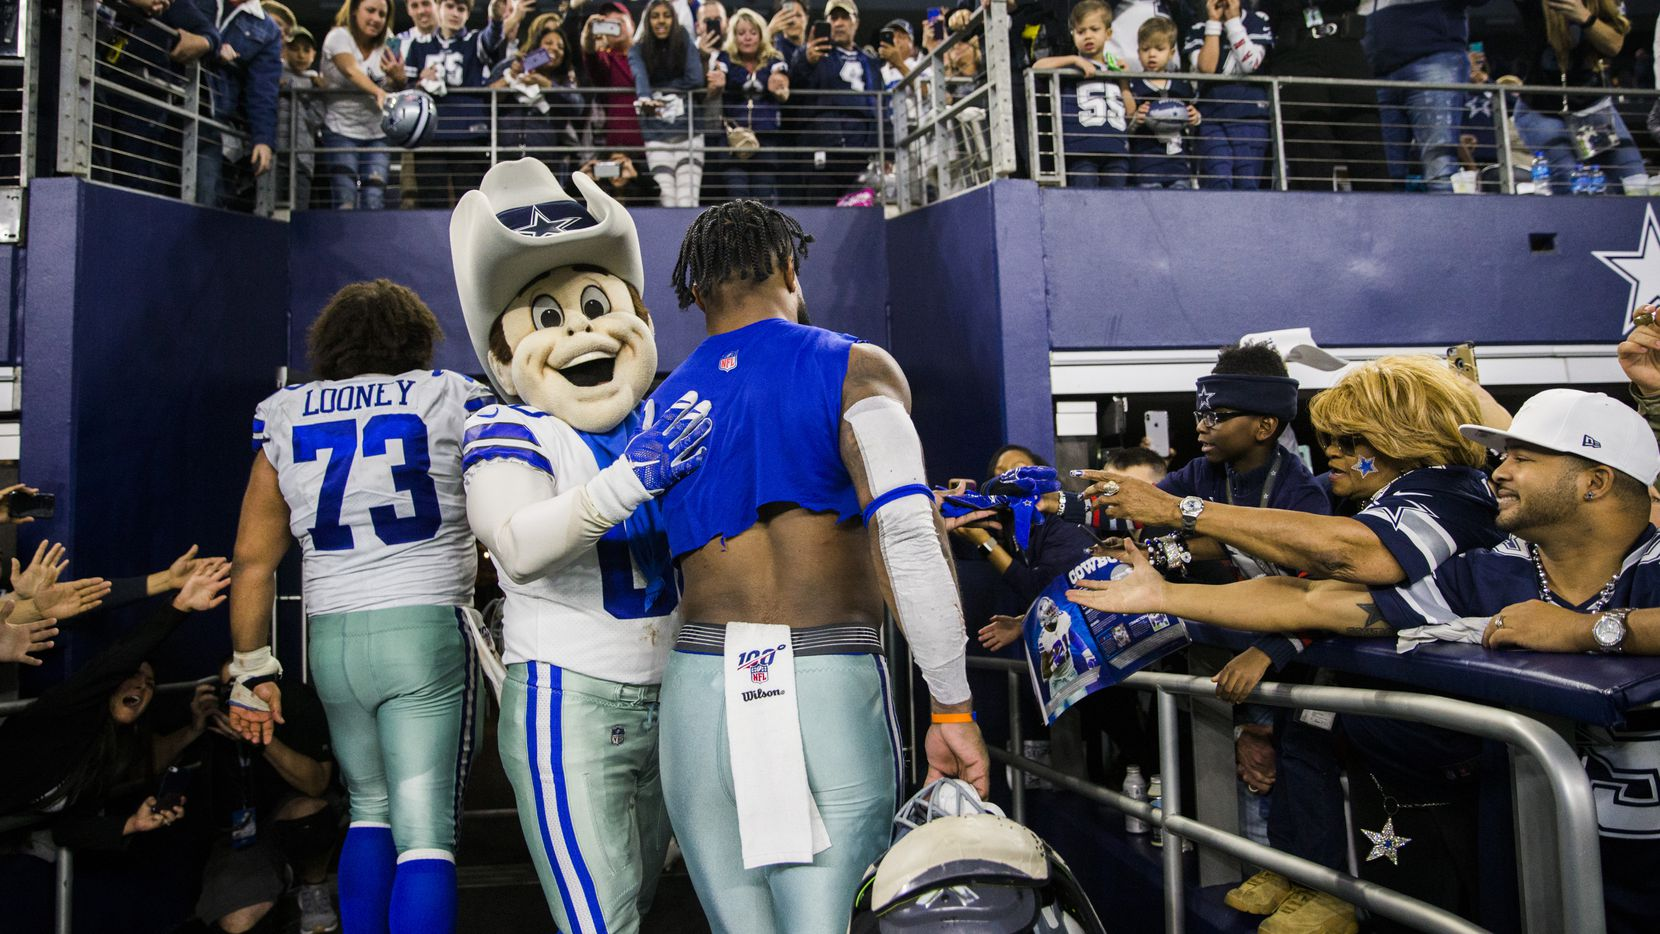 Dallas Cowboys mascot Rowdy pats running back Ezekiel Elliott (21) on the back as he and center Joe Looney (73) leave the field after an NFL game between the Dallas Cowboys and the Washington Redskins on Sunday, December 29, 2019 at AT&T Stadium in Arlington, Texas. (Ashley Landis/The Dallas Morning News)